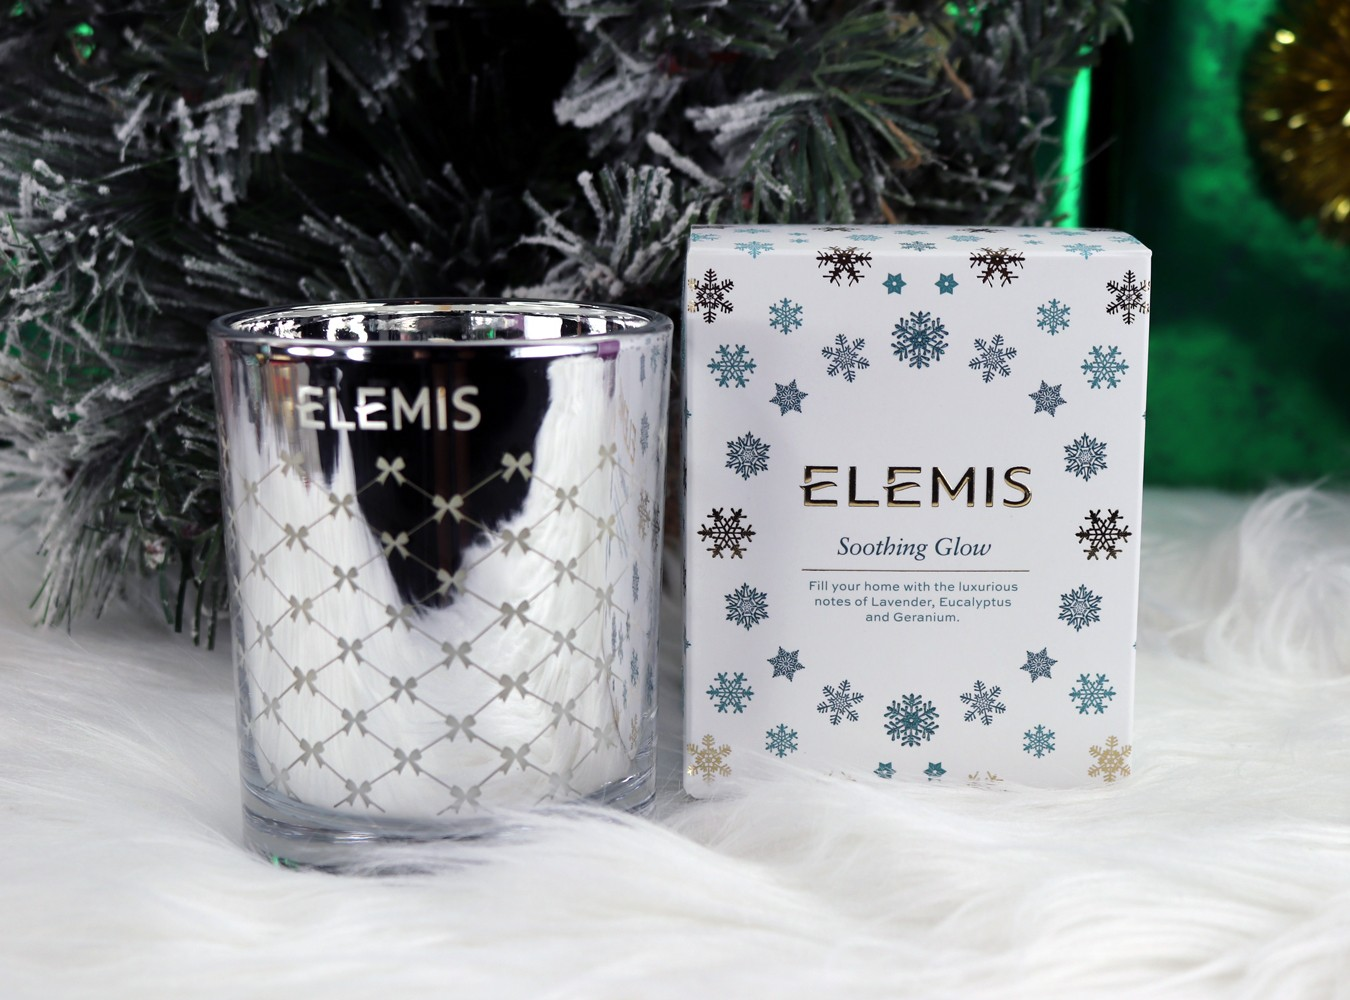 Elemis Holiday Glow Candle